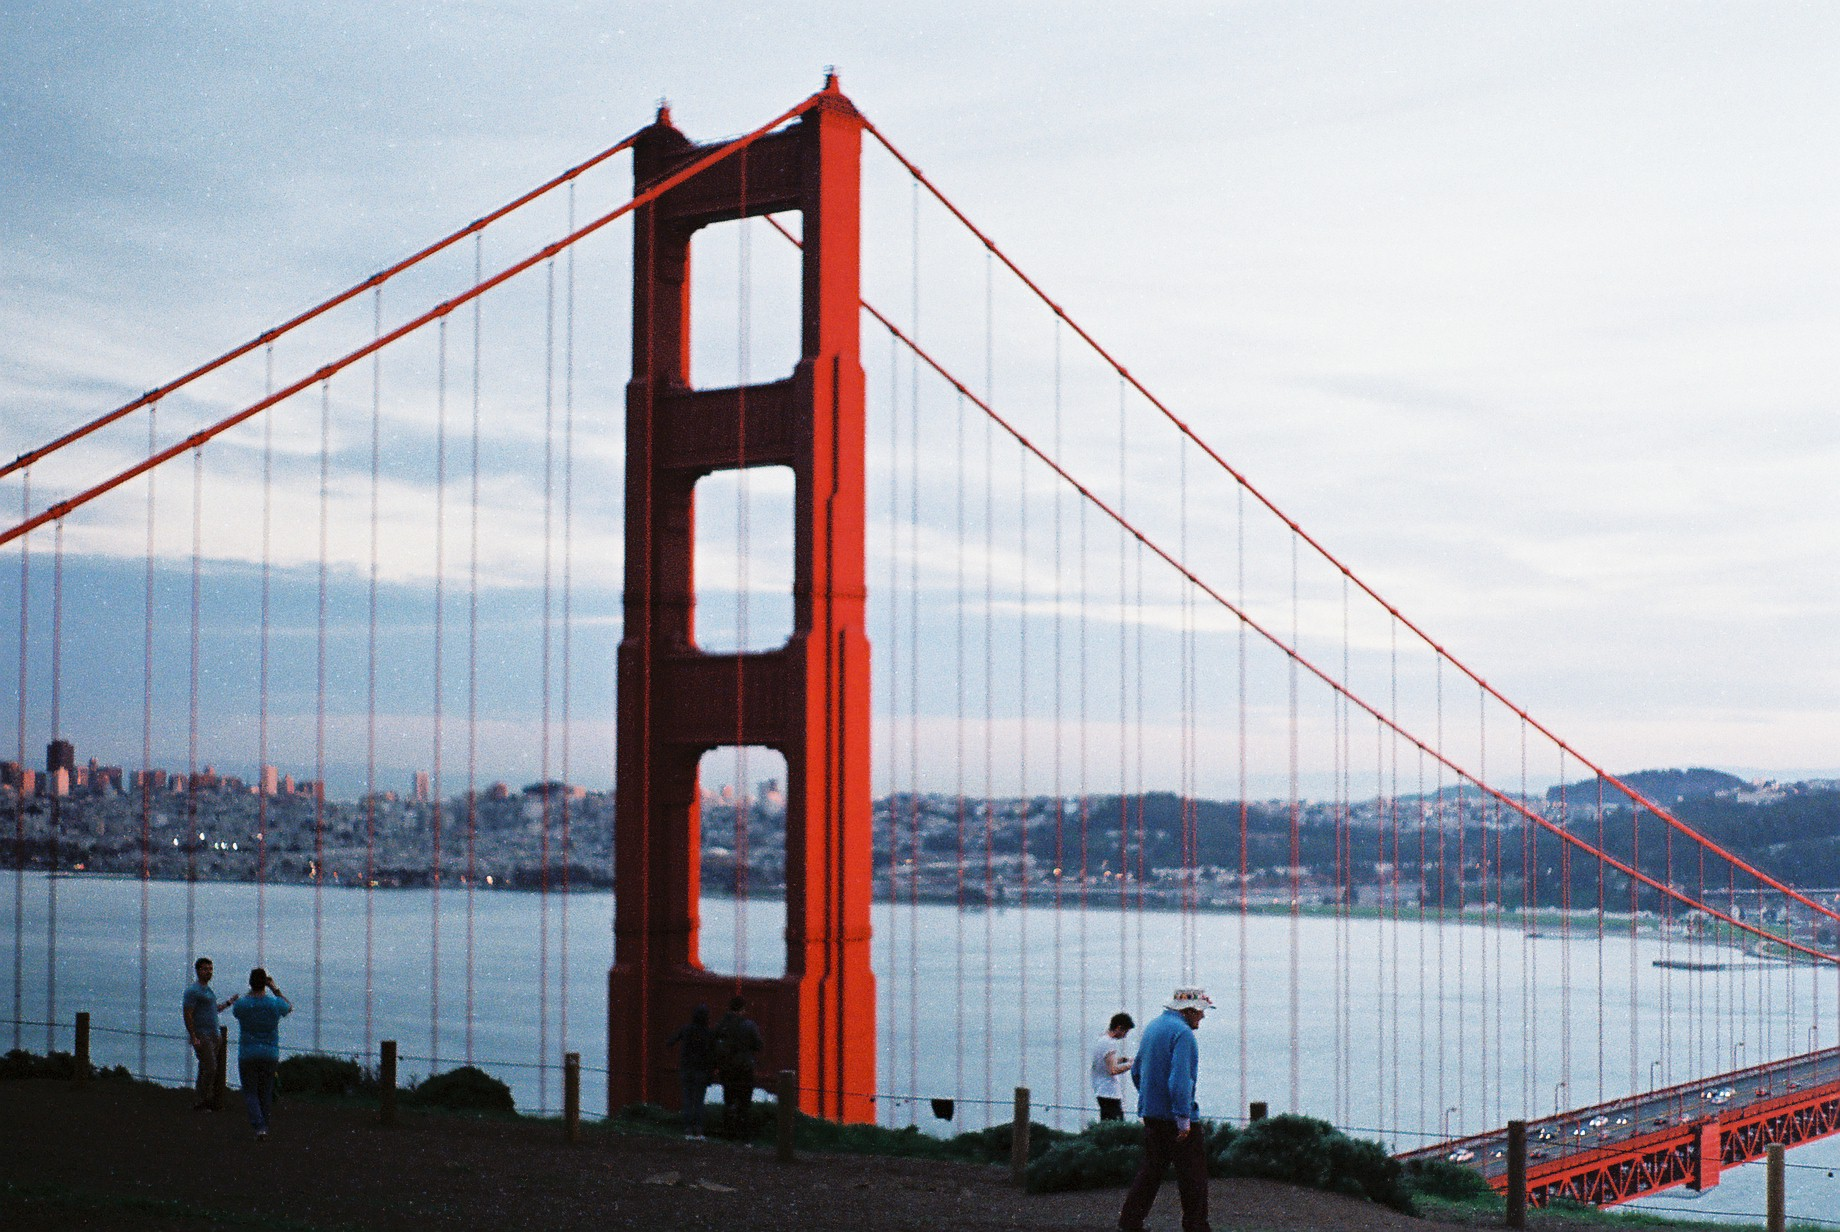 California Roadtrip SF Golden Gate Lookout Analogue Photo Journal